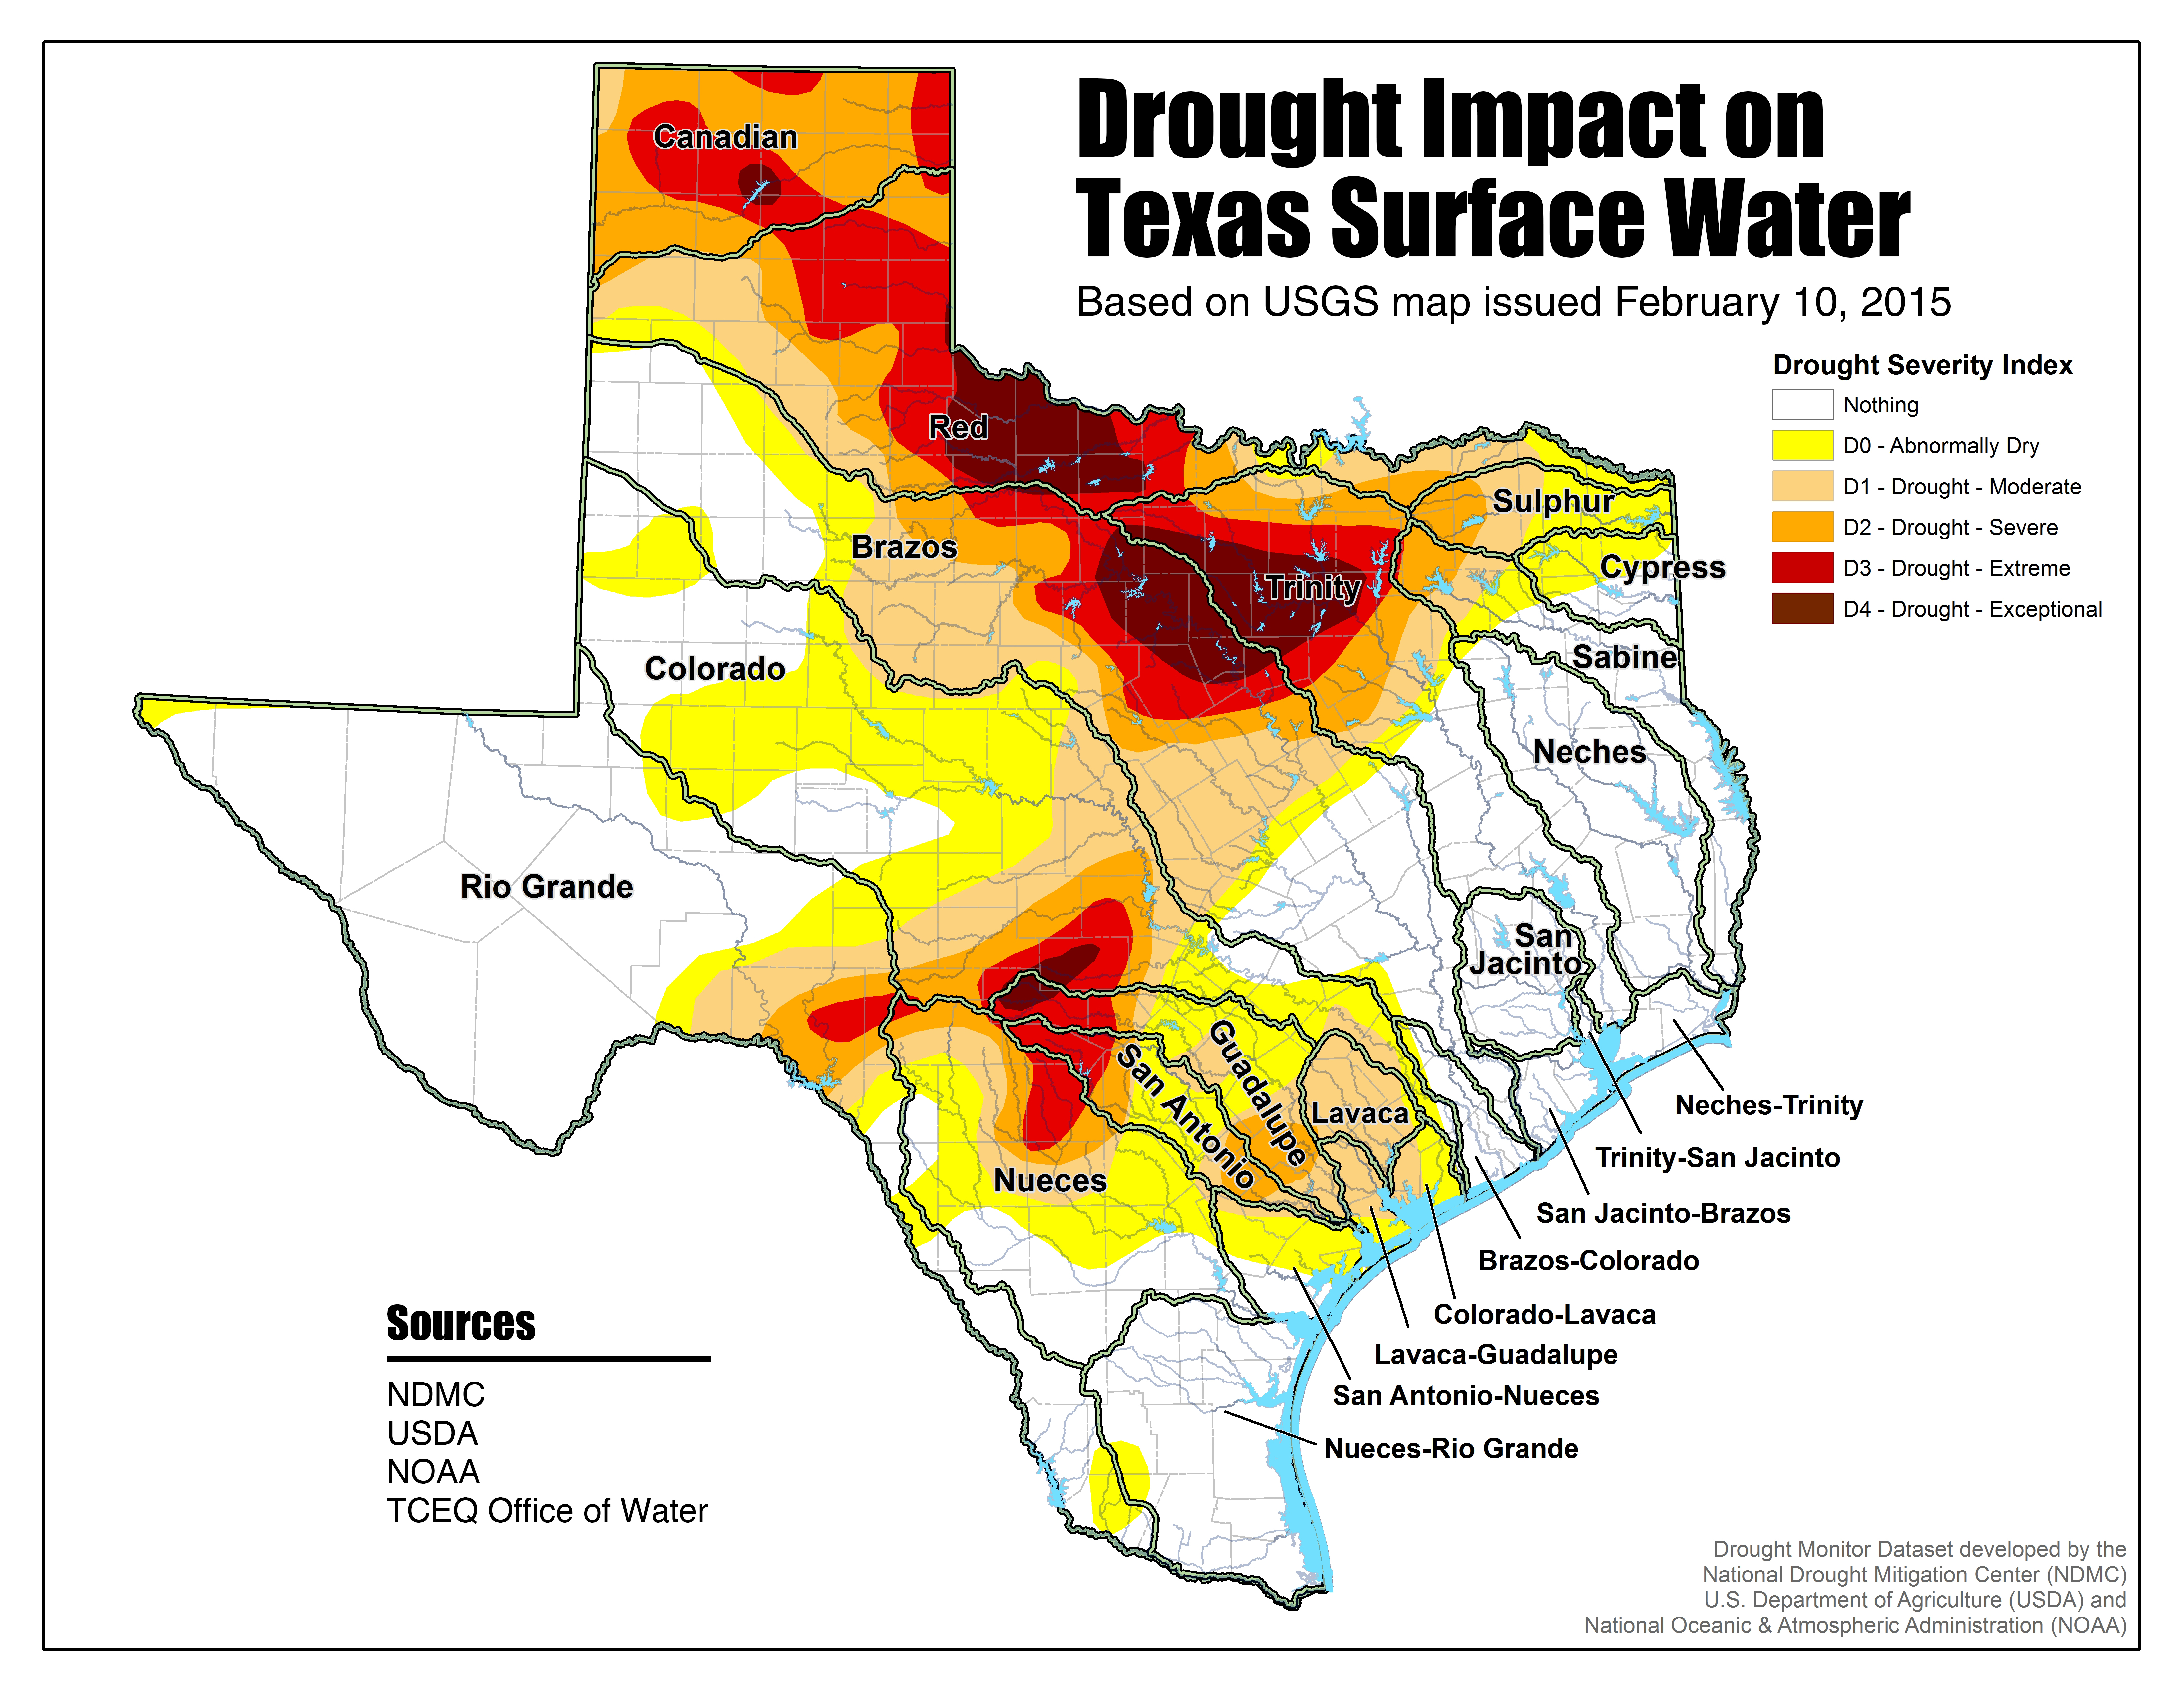 Texas Drought Map Current Texas Drought Map | Business Ideas 2013 Texas Drought Map